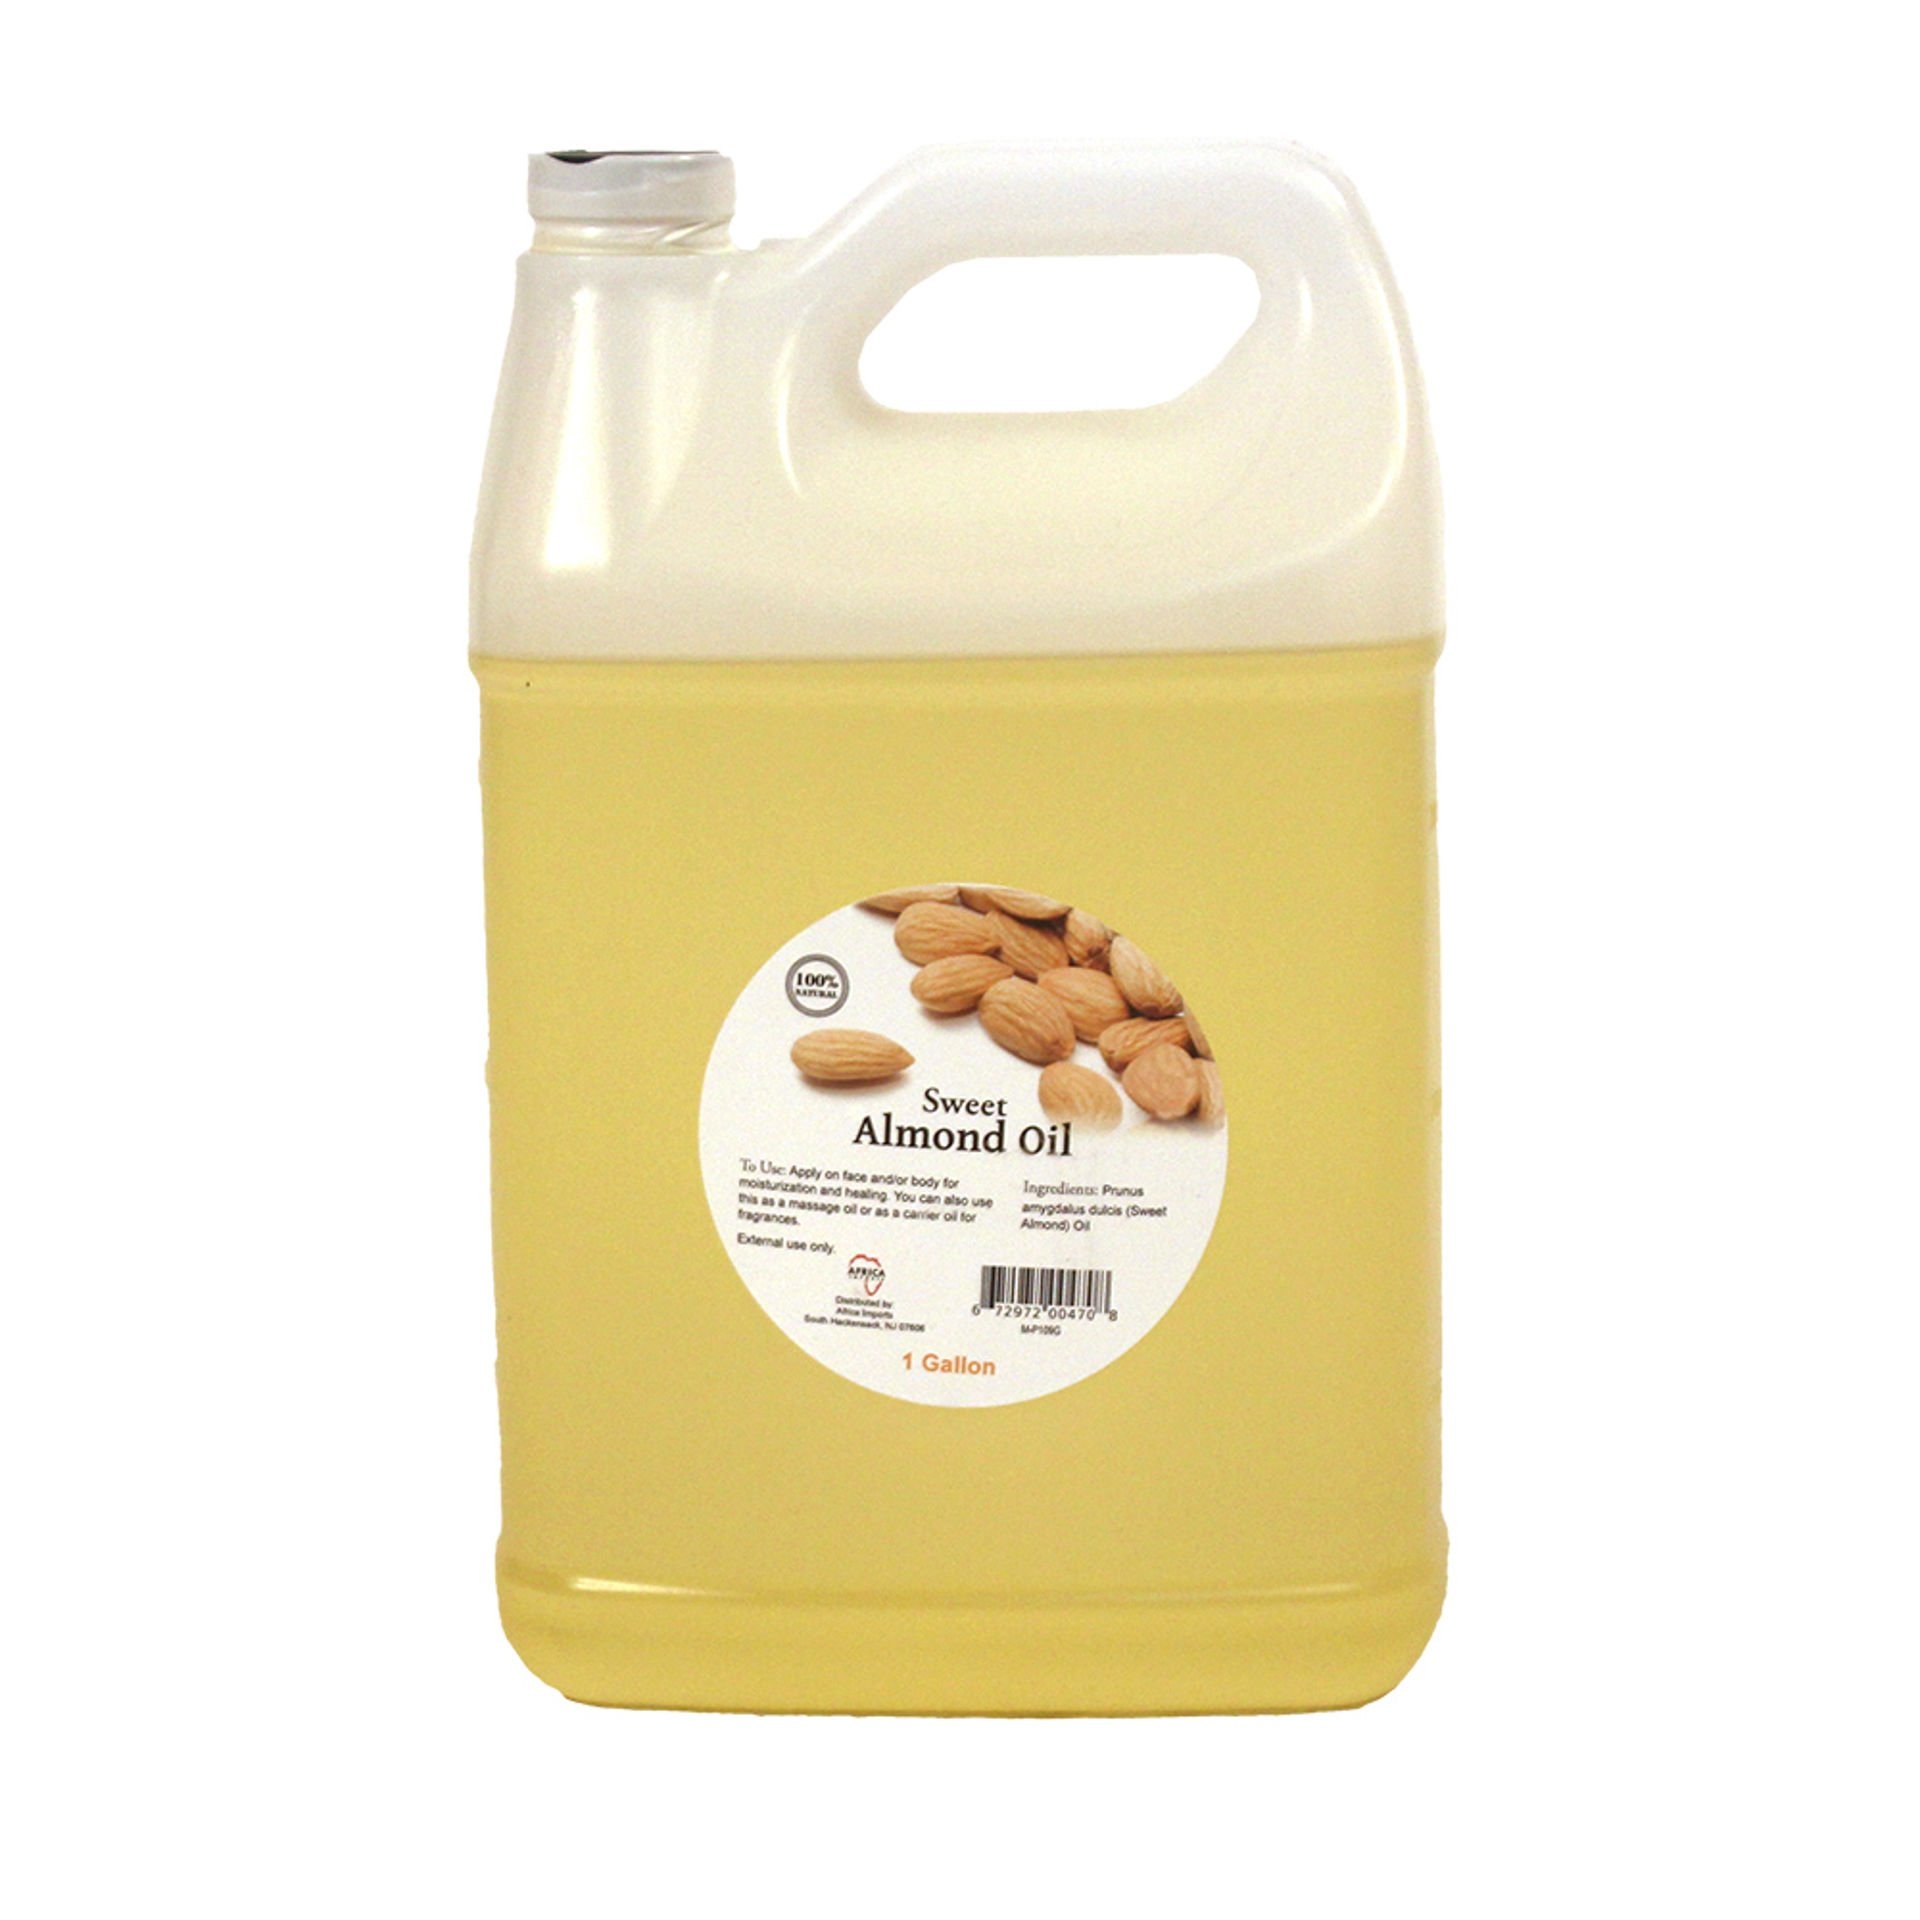 Picture of Sweet Almond Oil - 1 Gallon